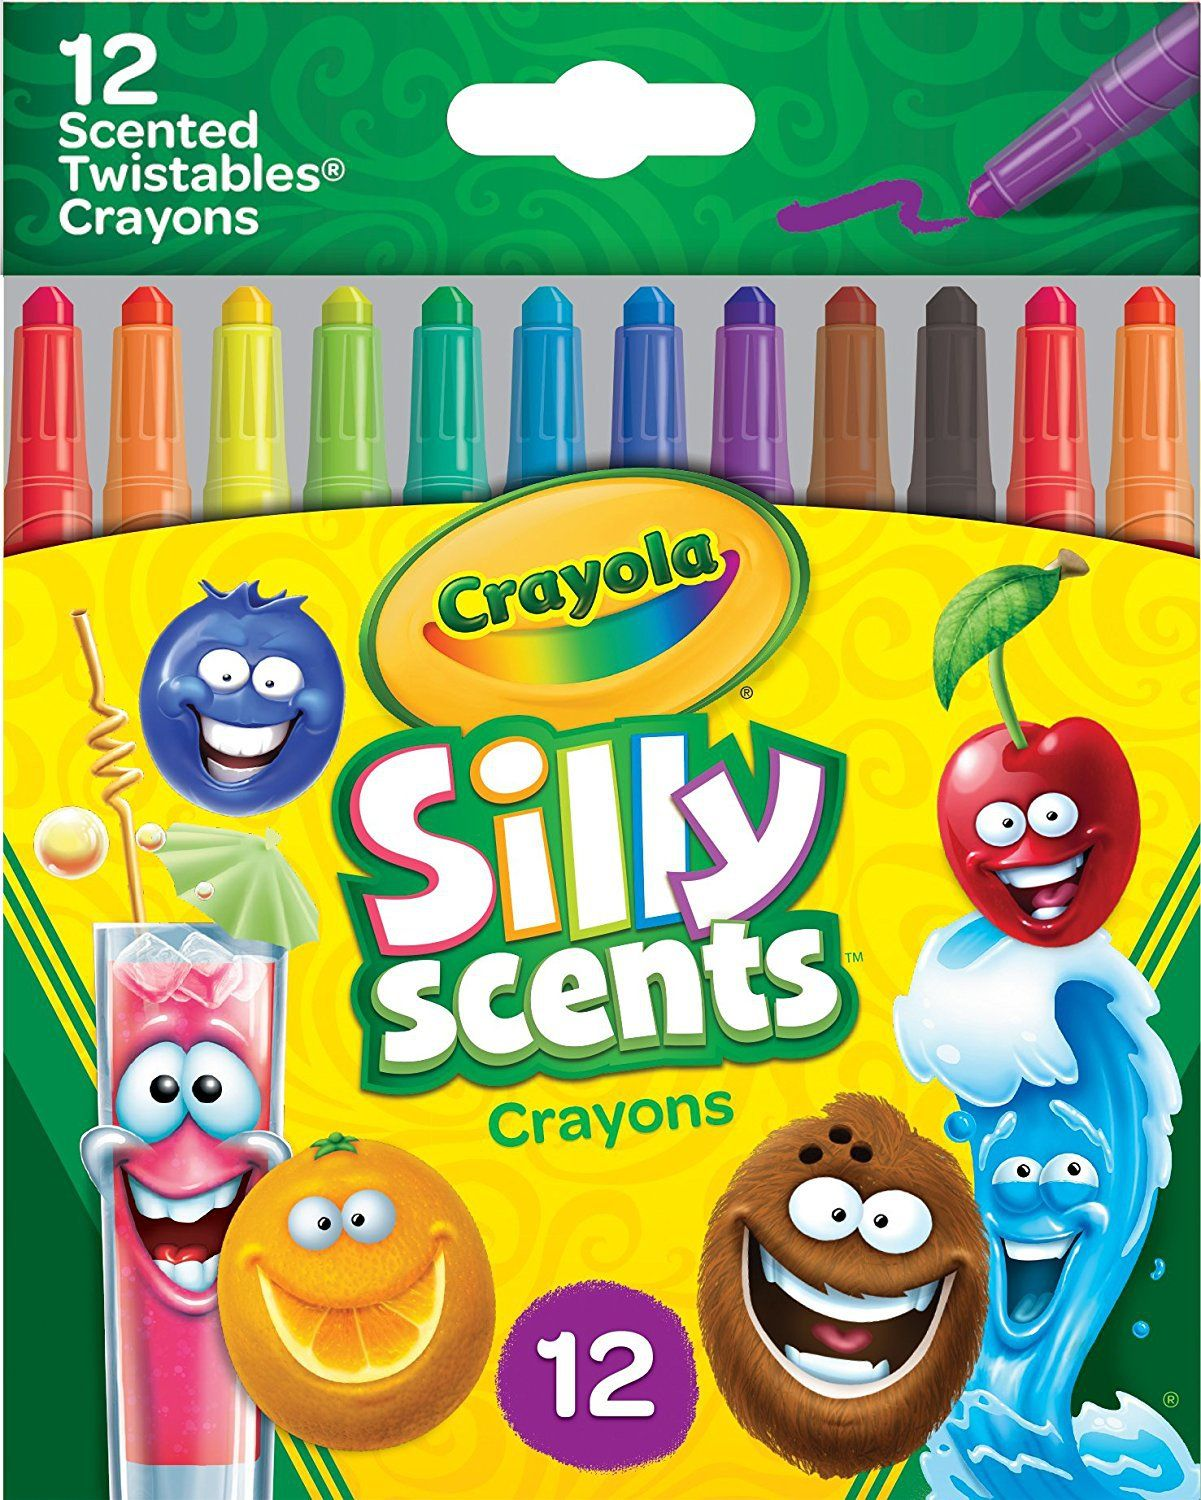 Latest Toys For Girls In 2021 Crayon Gifts Crayola Crayon Set